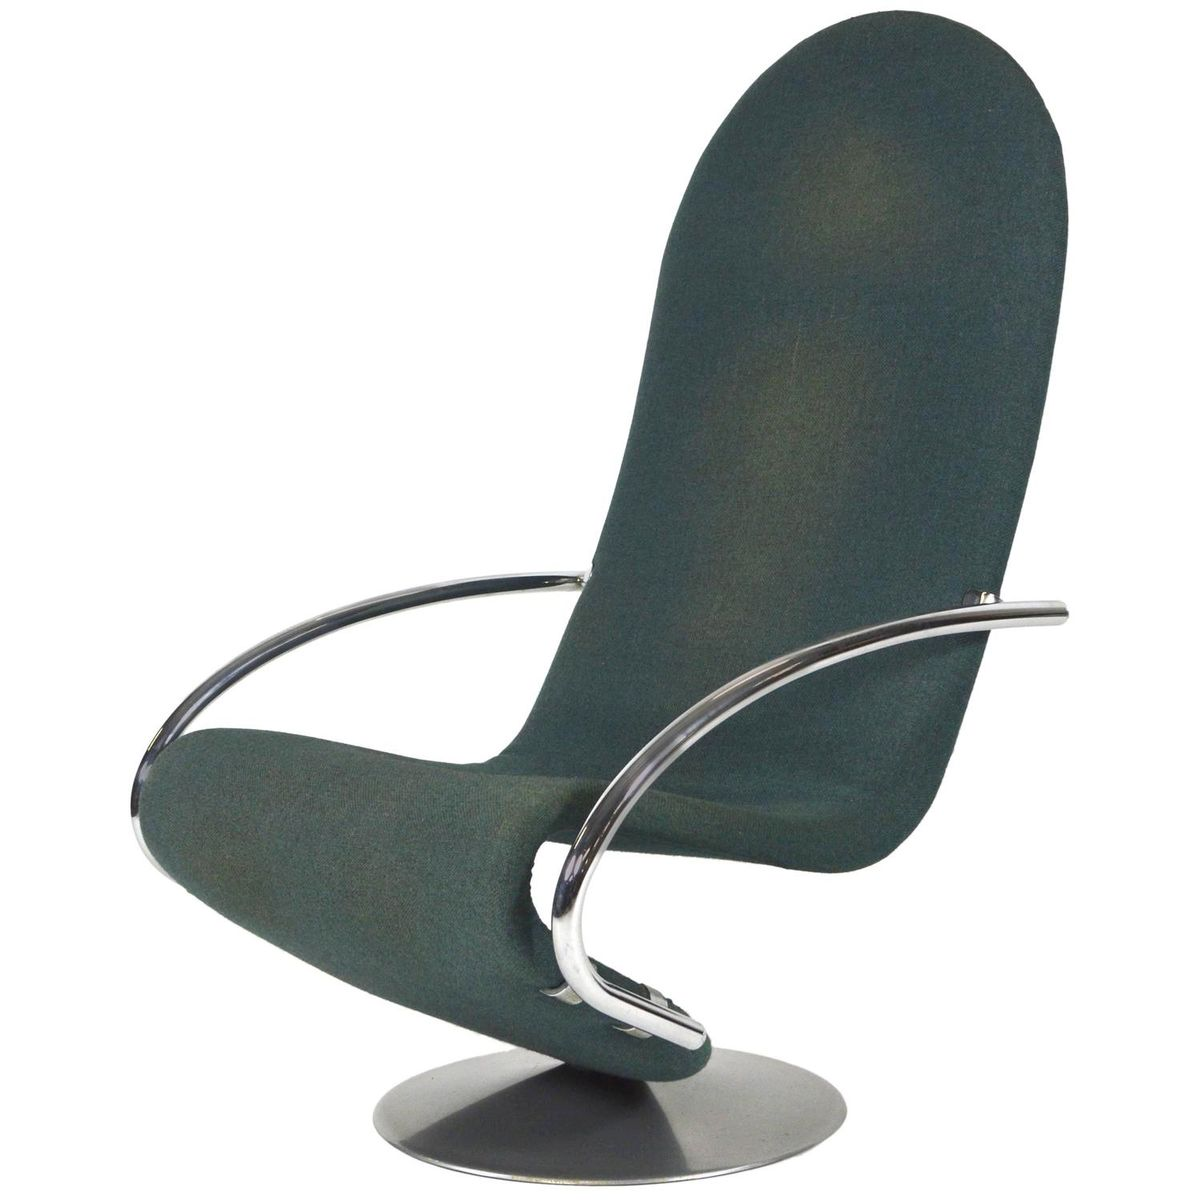 chair 1 2. danish 1-2-3 swivel lounge chair by verner panton for fritz hansen, 1970s 1 2 i